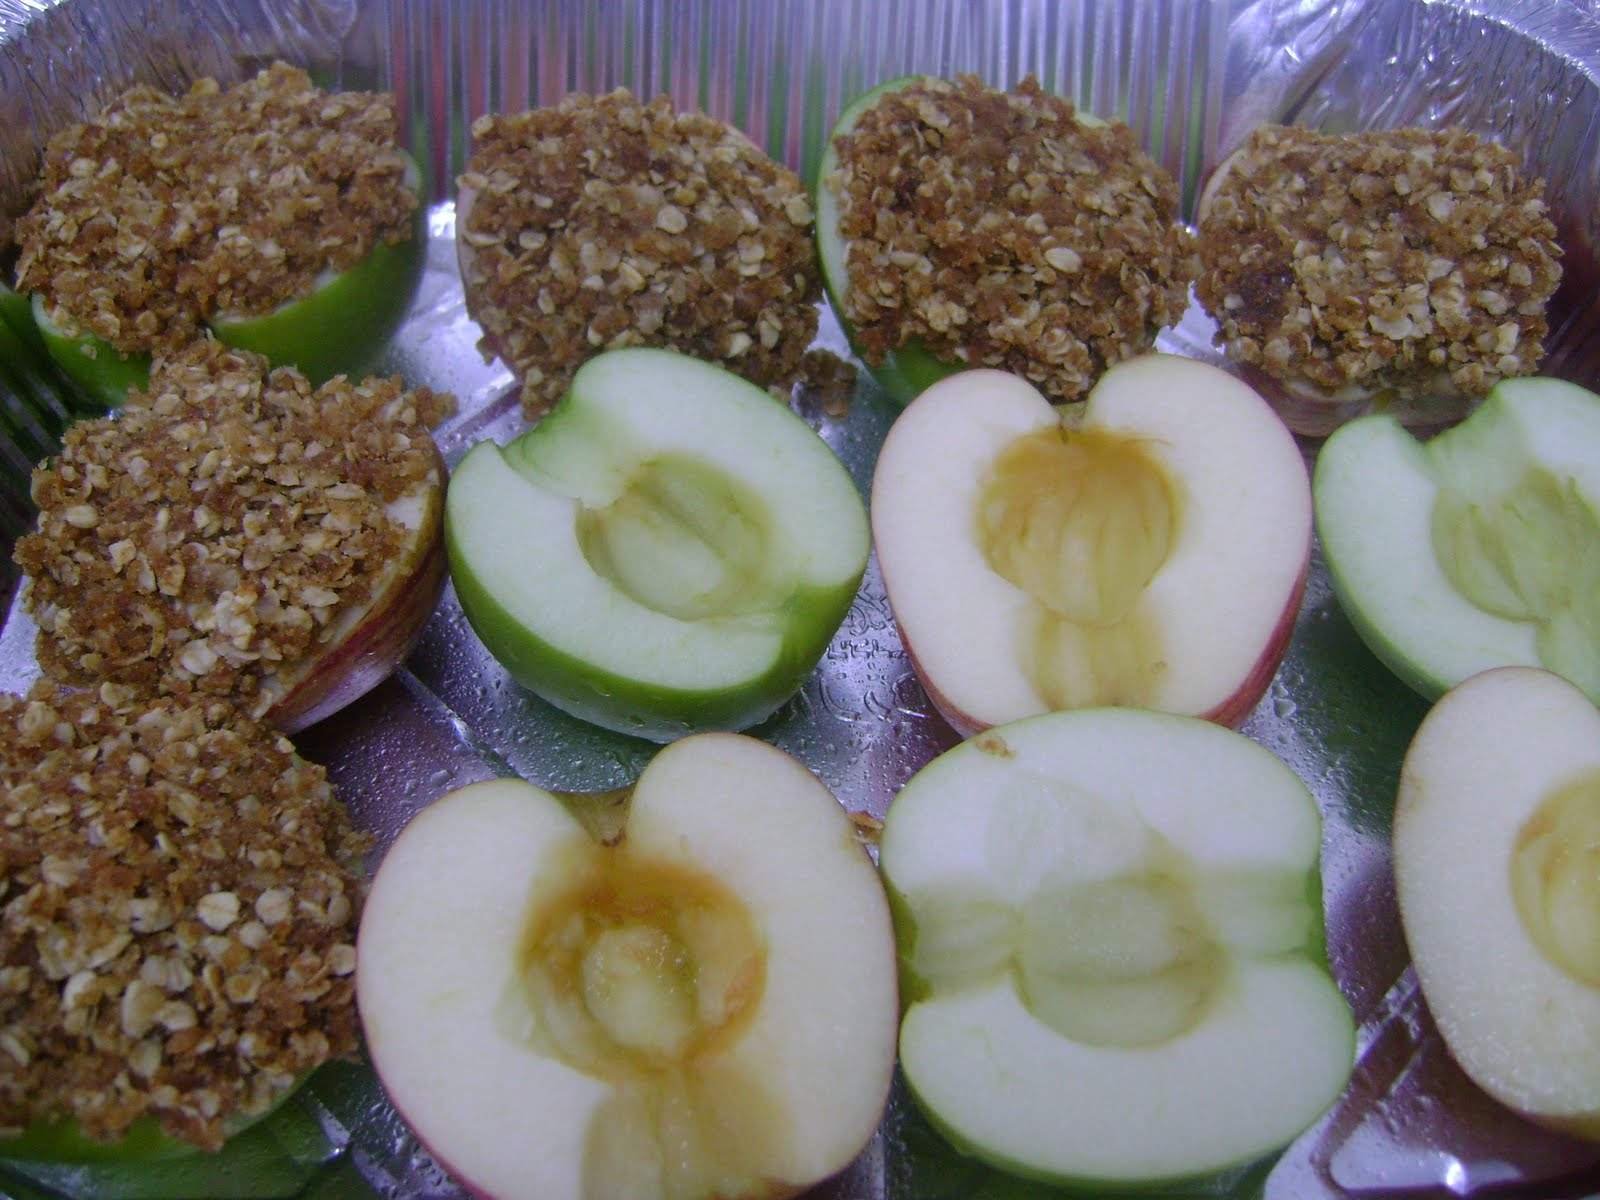 Baked Apples Stuffed With Cinnamon Date Pecan Oatmeal Recipes ...